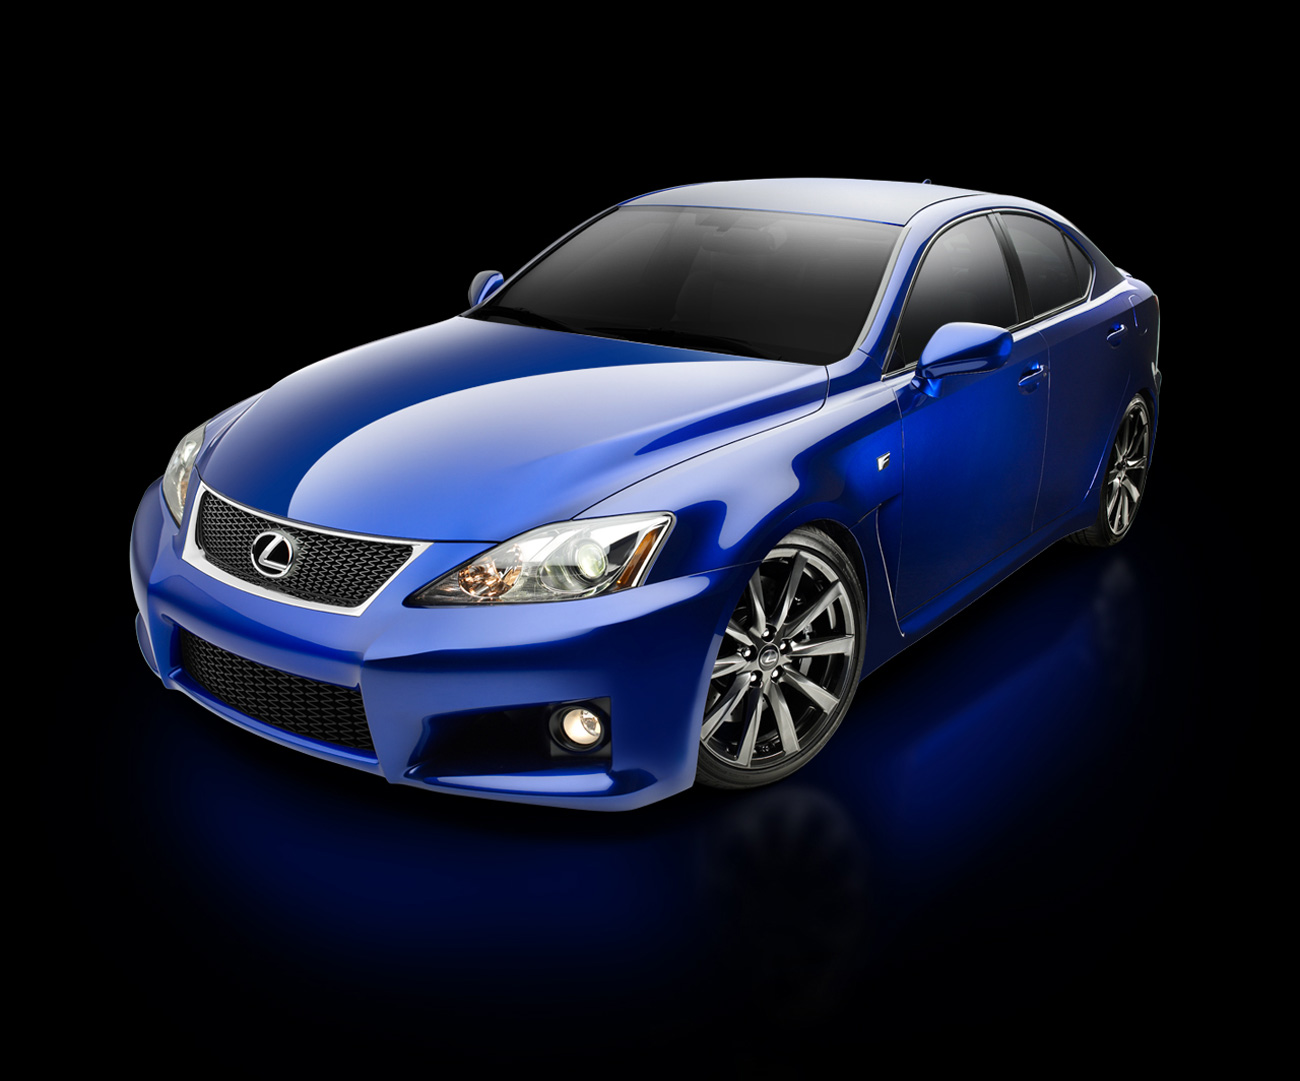 lexus is f High Resolution Wallpaper Free Wallpaper